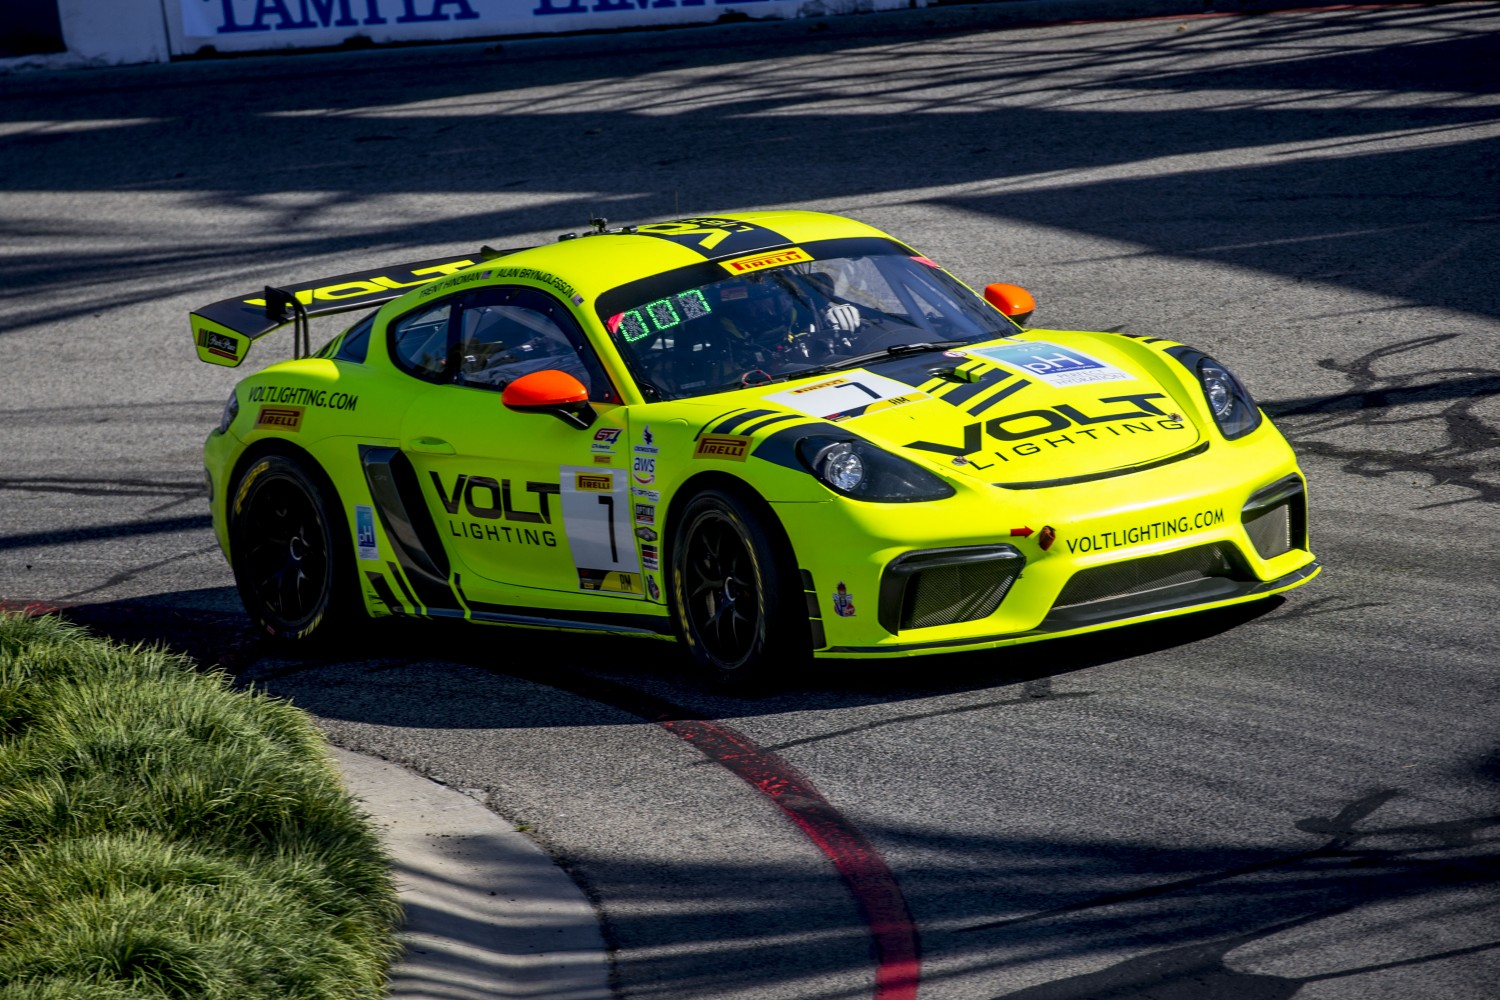 #7 Porsche 718 Cayman GT4 CS MR of Alan Brynjolfsson, Streets of Long Beach, Long Beach, CA.